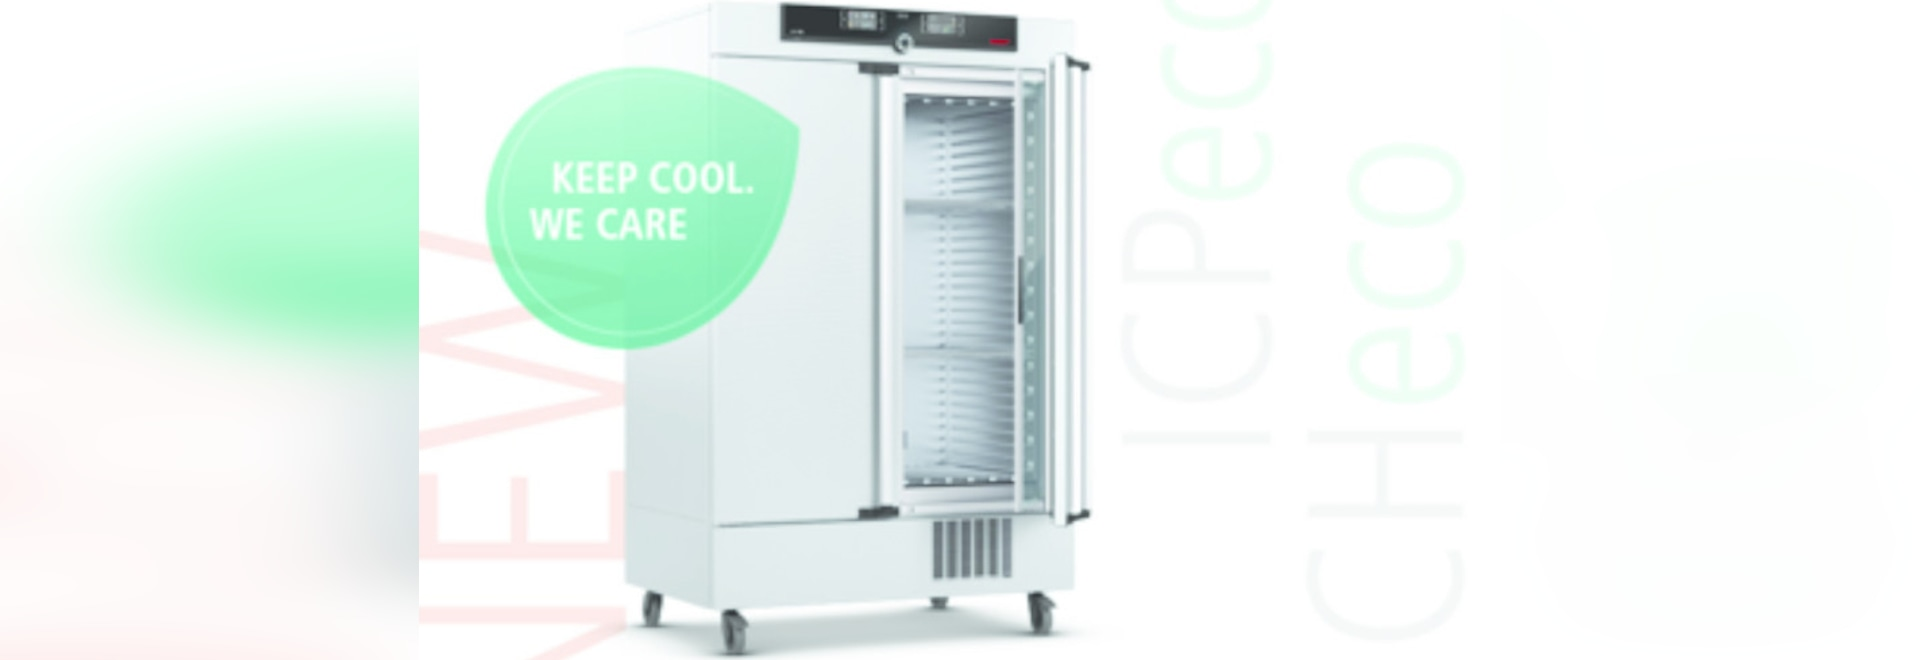 Memmert appliances ICHeco and ICPeco now CO2-cooled